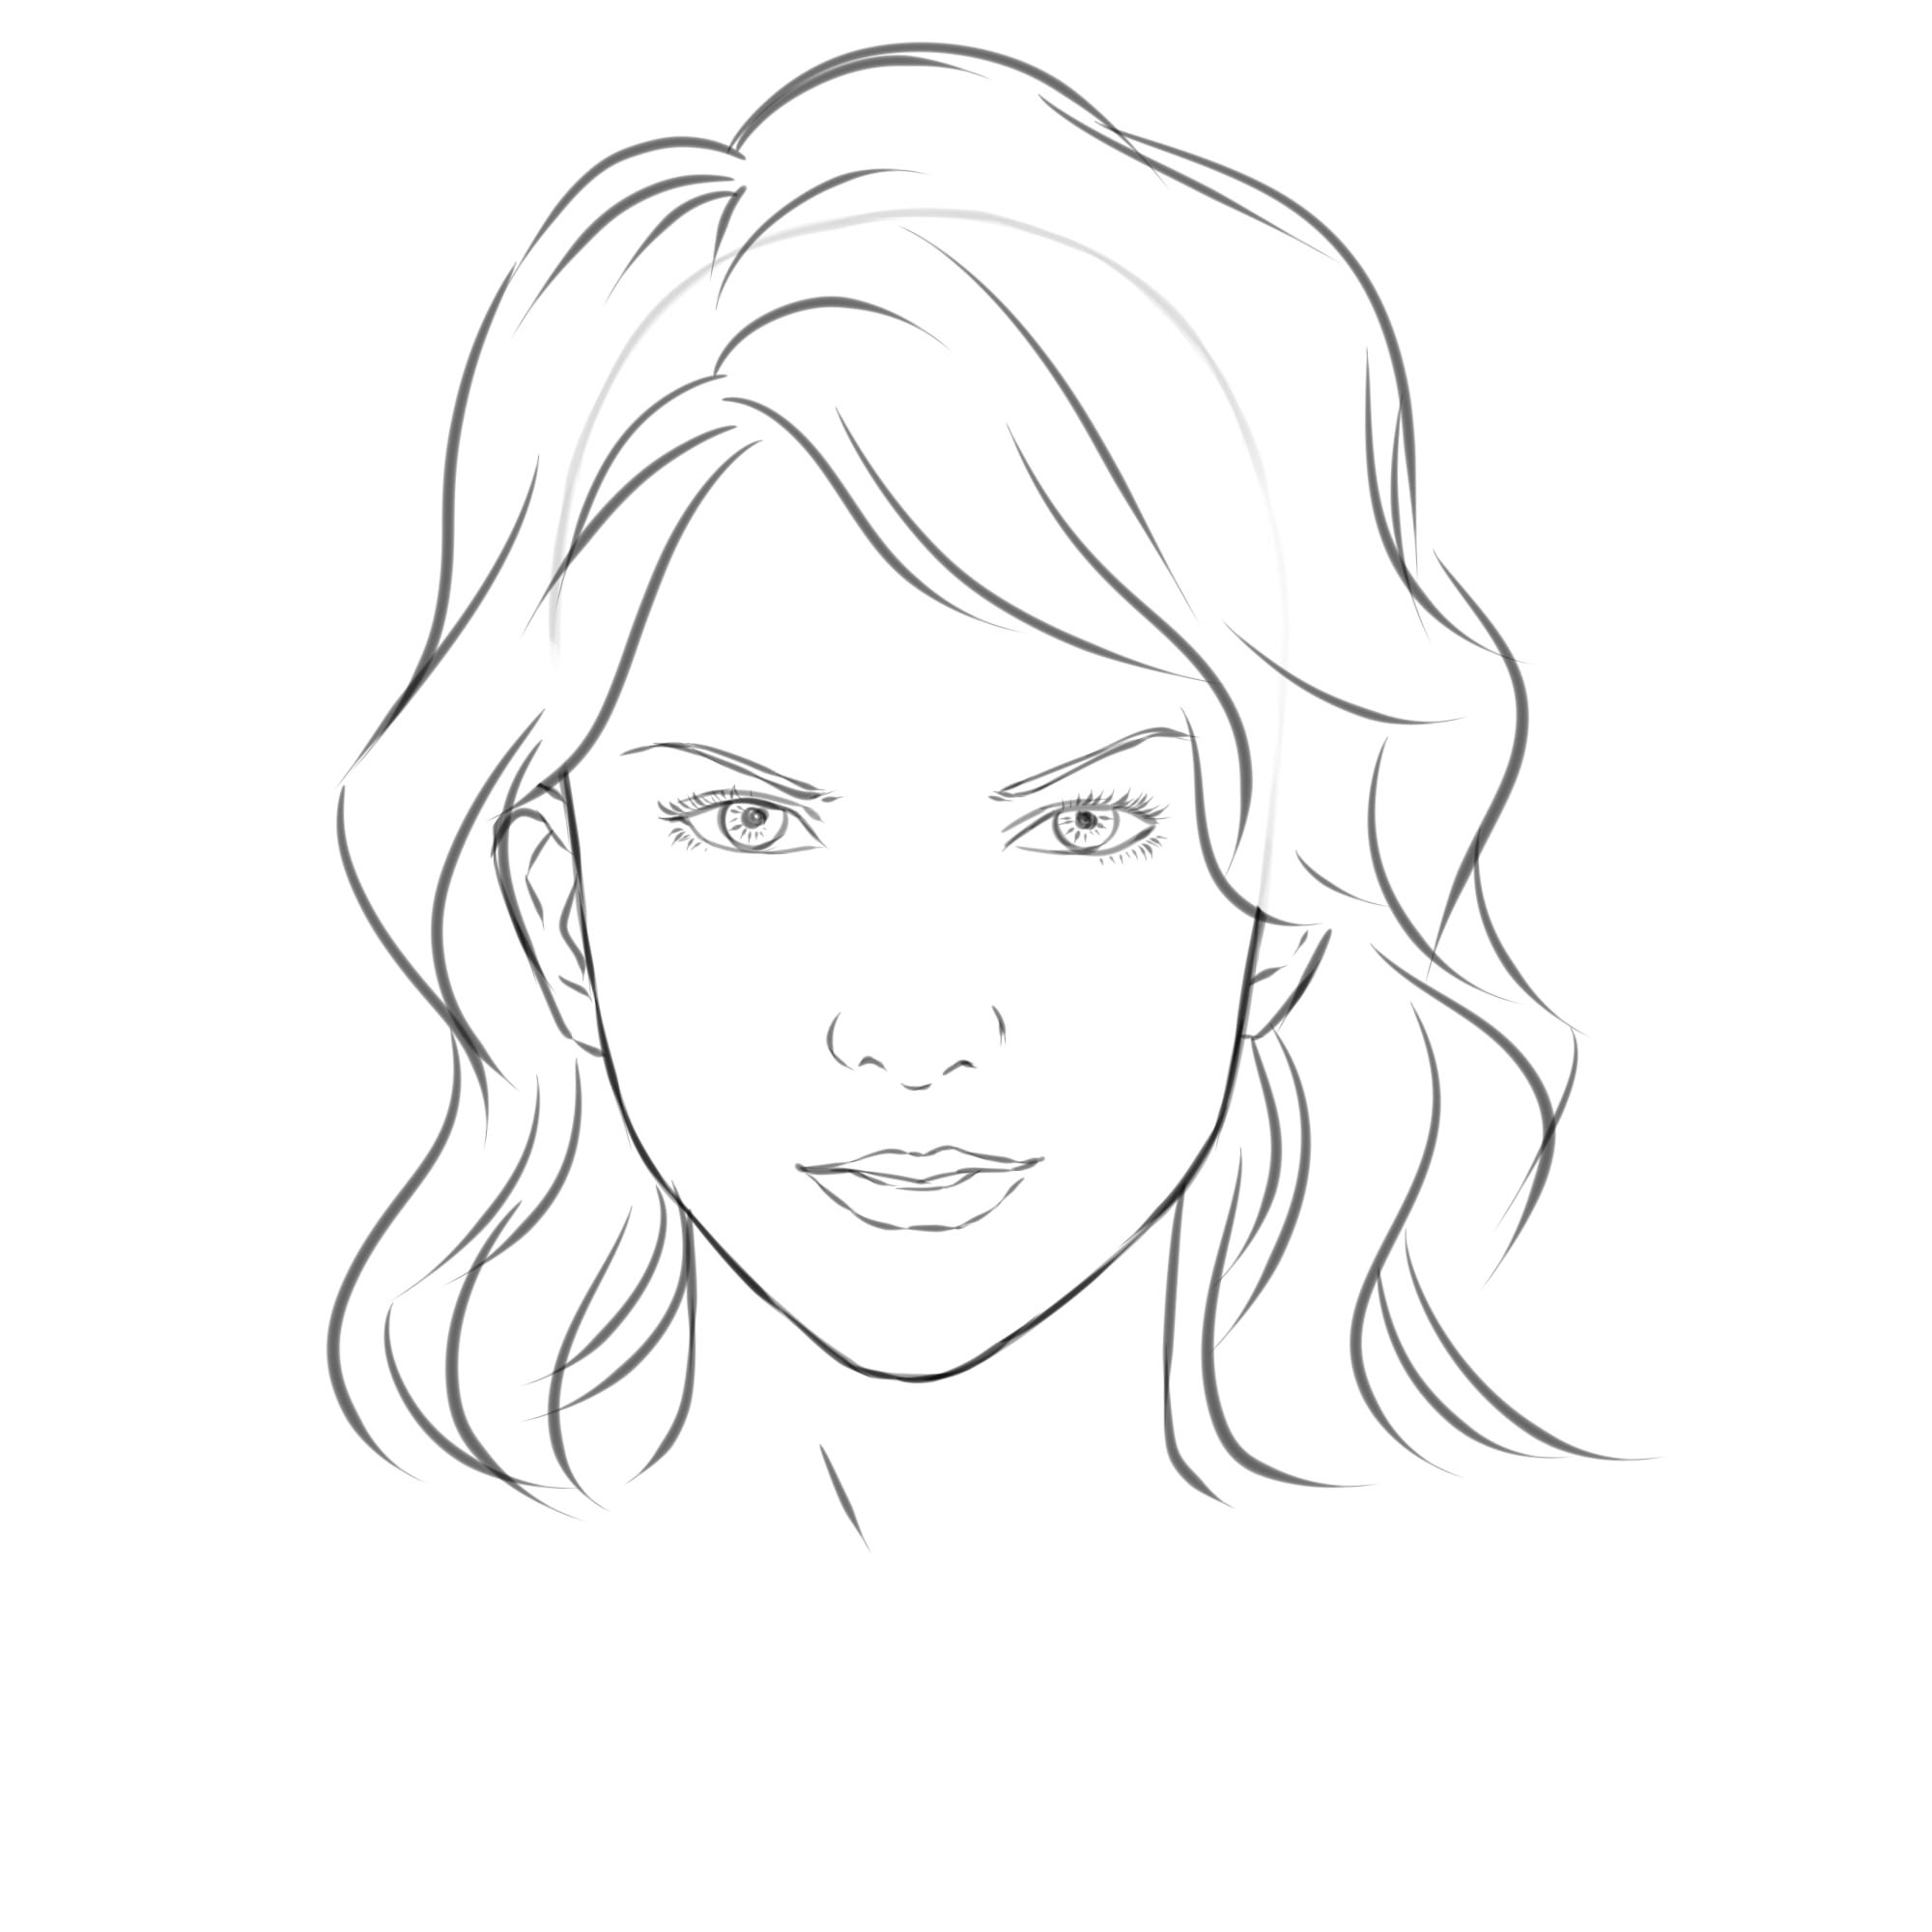 2000x2000 Easy Human Faces Drawings Easy Sketch Of Face Human Face Sketches